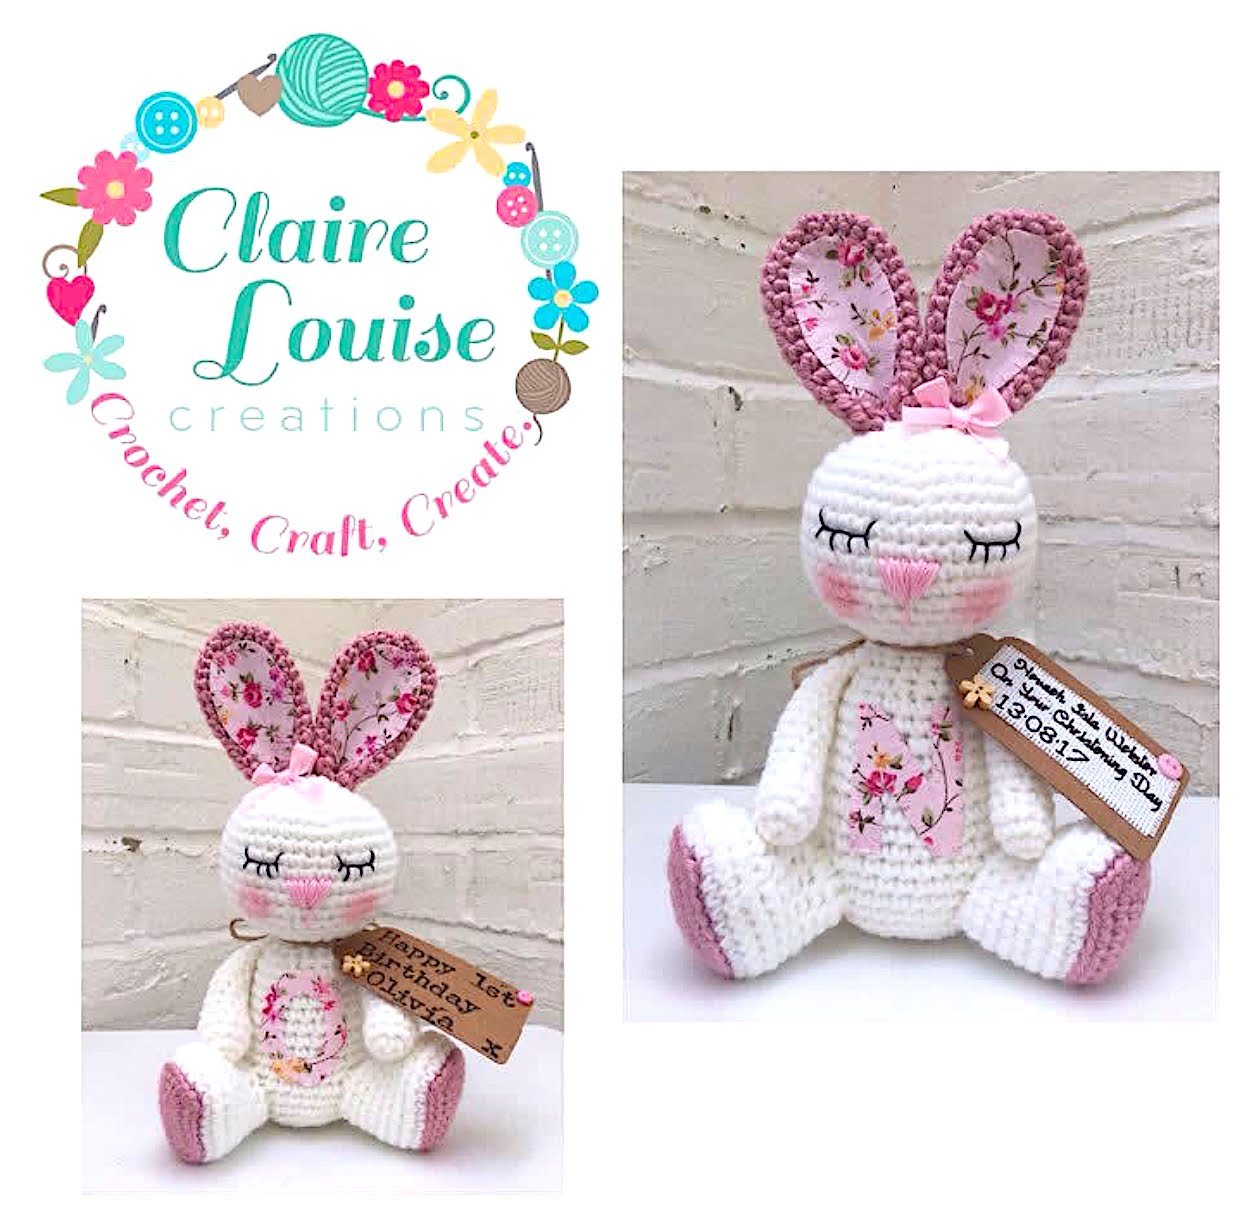 Claire Louise Creations